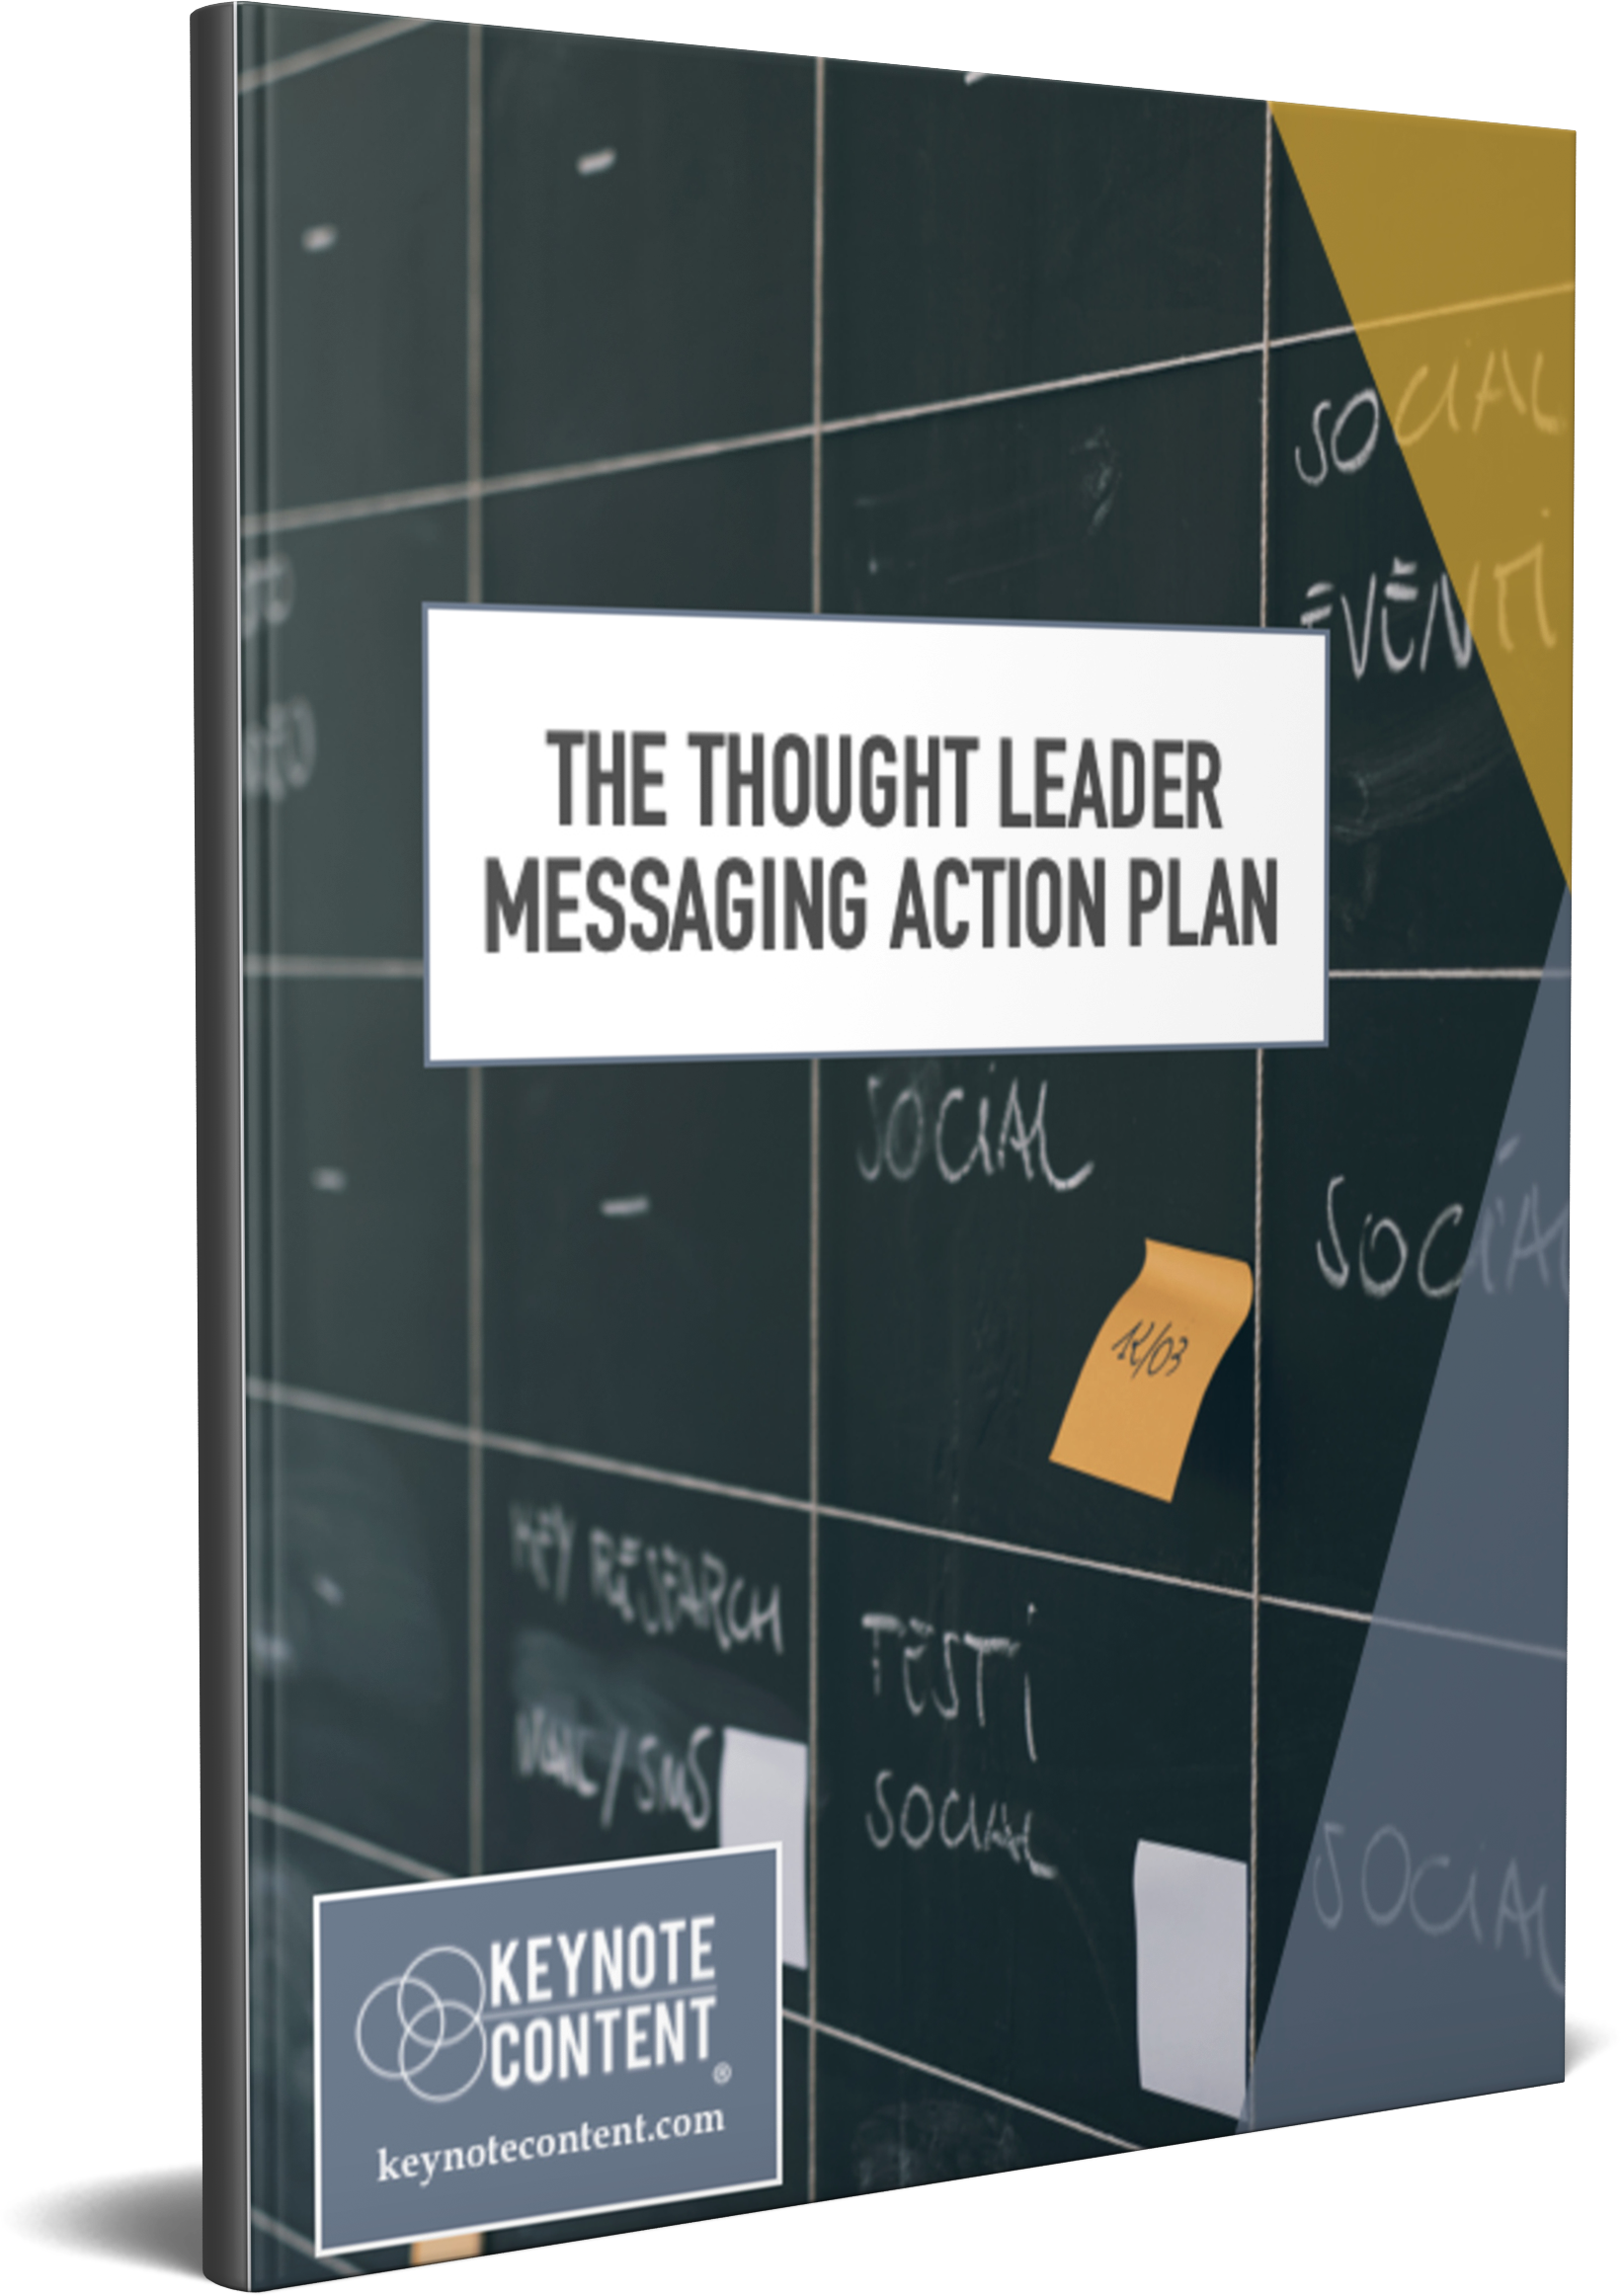 The Thought Leader Messaging Action Plan | Keynote Content with Jon Cook